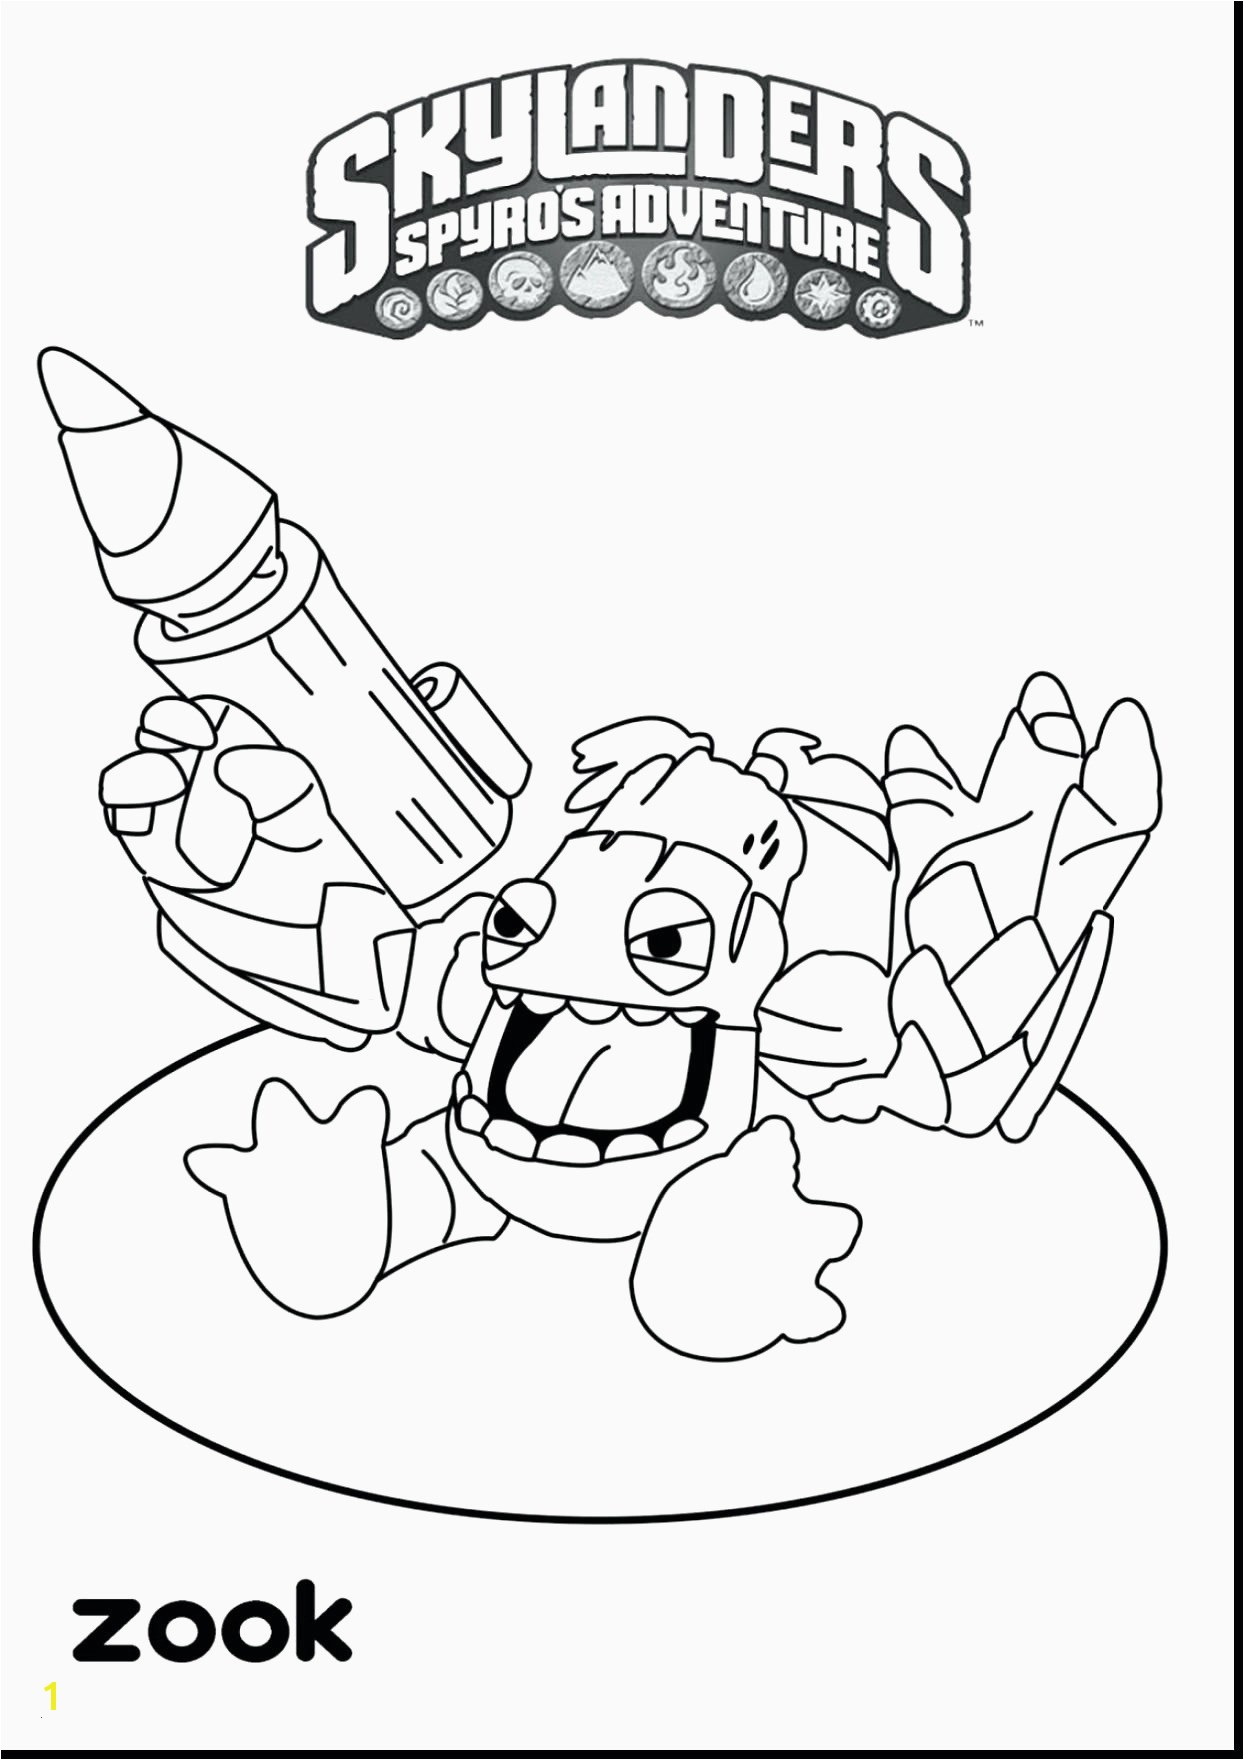 Tooth Coloring Page Coloring Line Wonderful Boy Colouring Pages Dentist